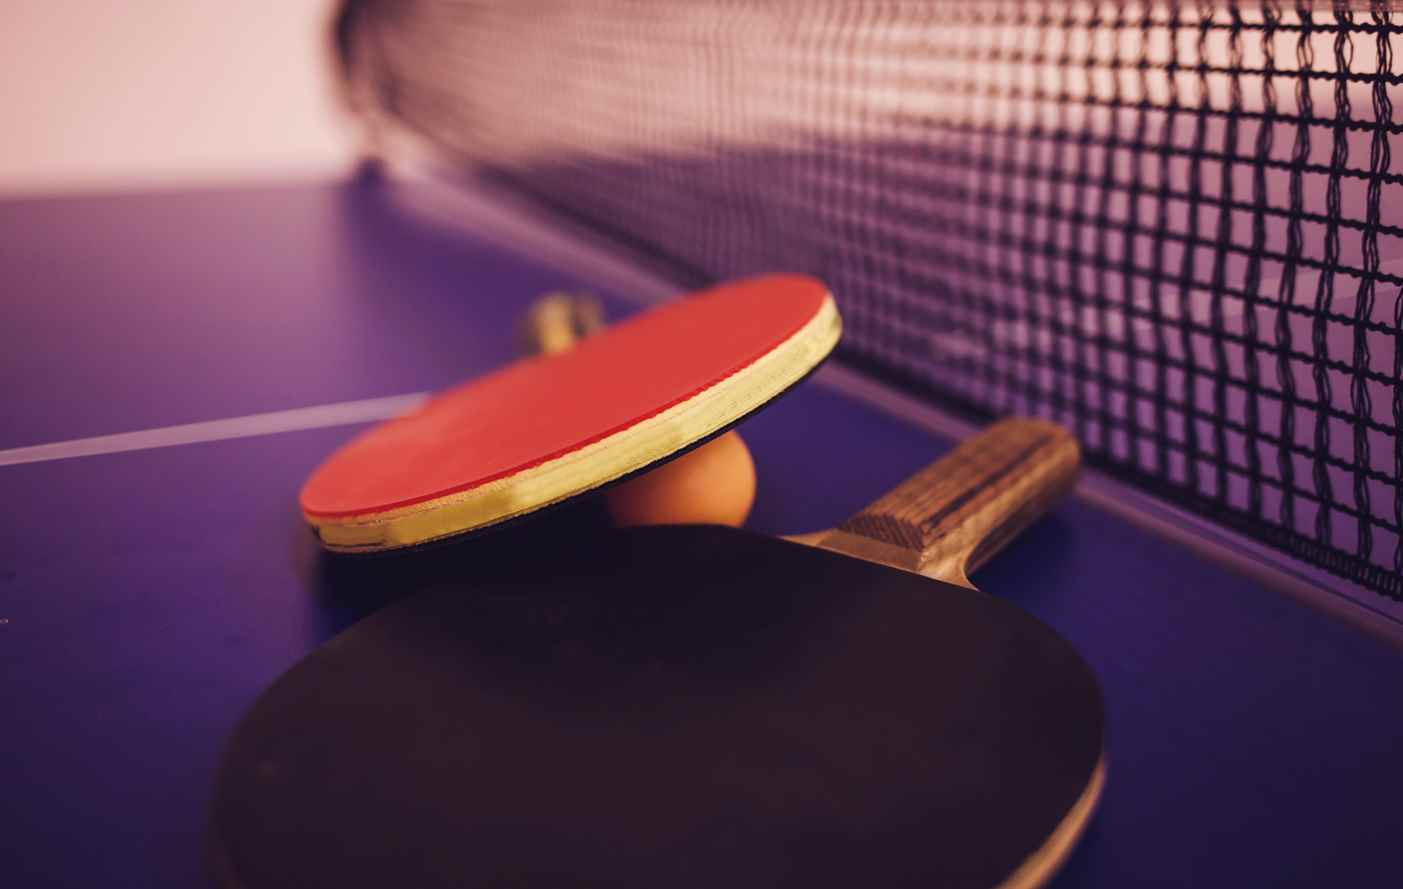 5 Easy Ways to Clean Your Table Tennis Paddle & What to Use